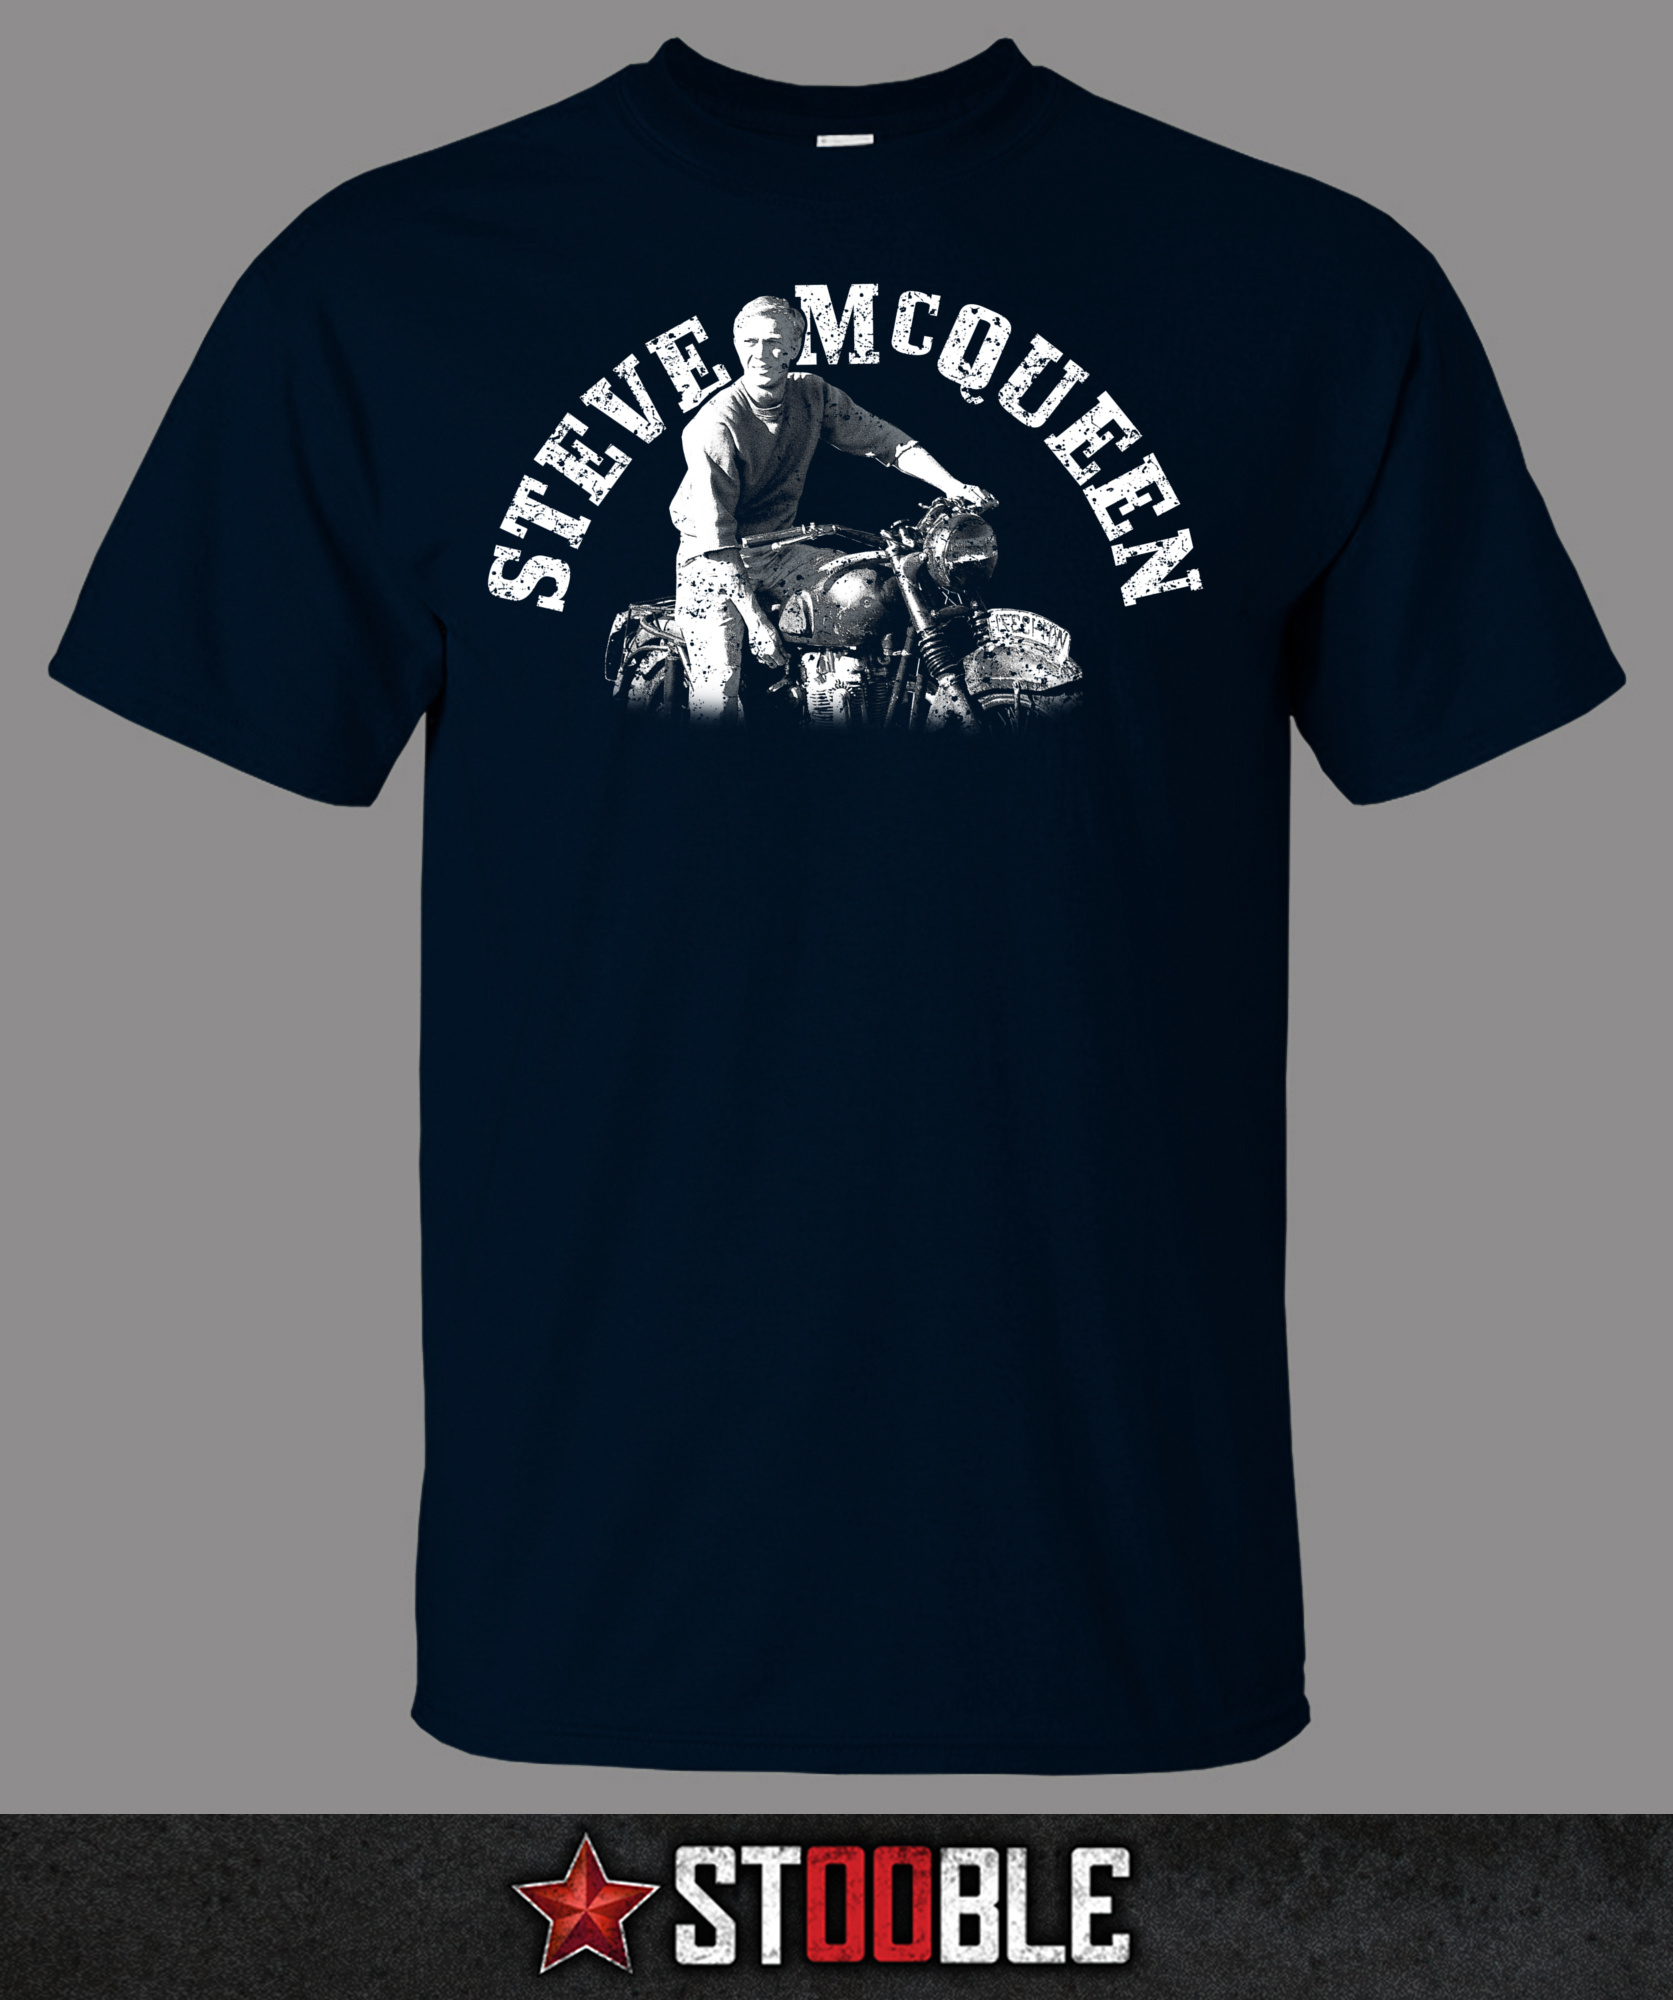 steve mcqueen motorbike t shirt direct from stockist. Black Bedroom Furniture Sets. Home Design Ideas